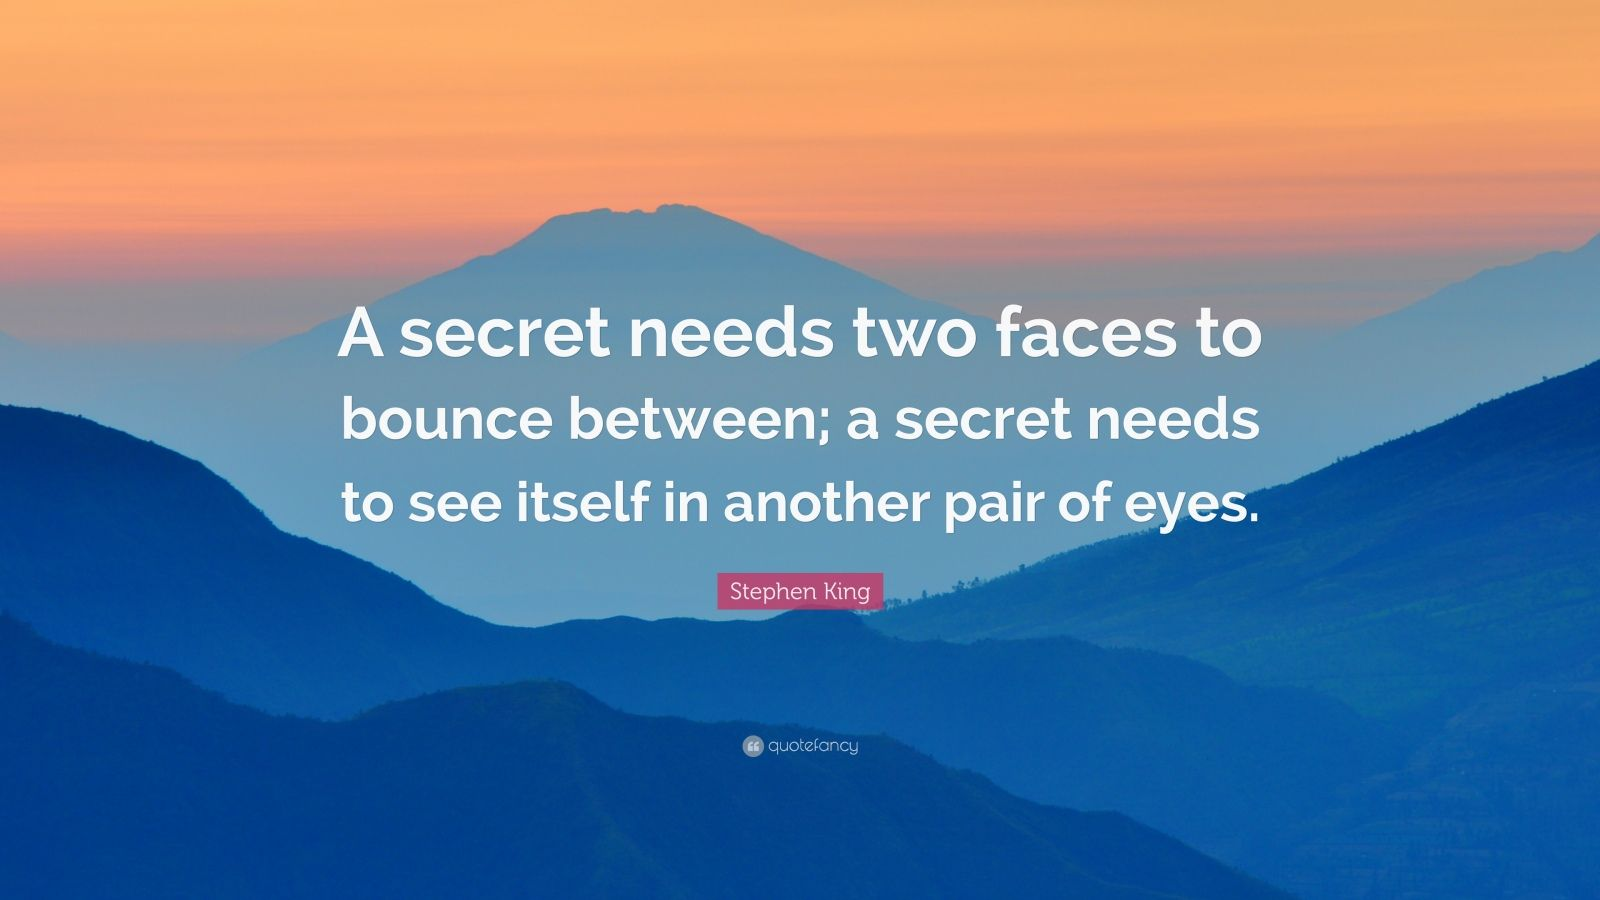 """Stephen King Quote: """"A secret needs two faces to bounce between; a secret needs to see itself in another pair of eyes."""""""